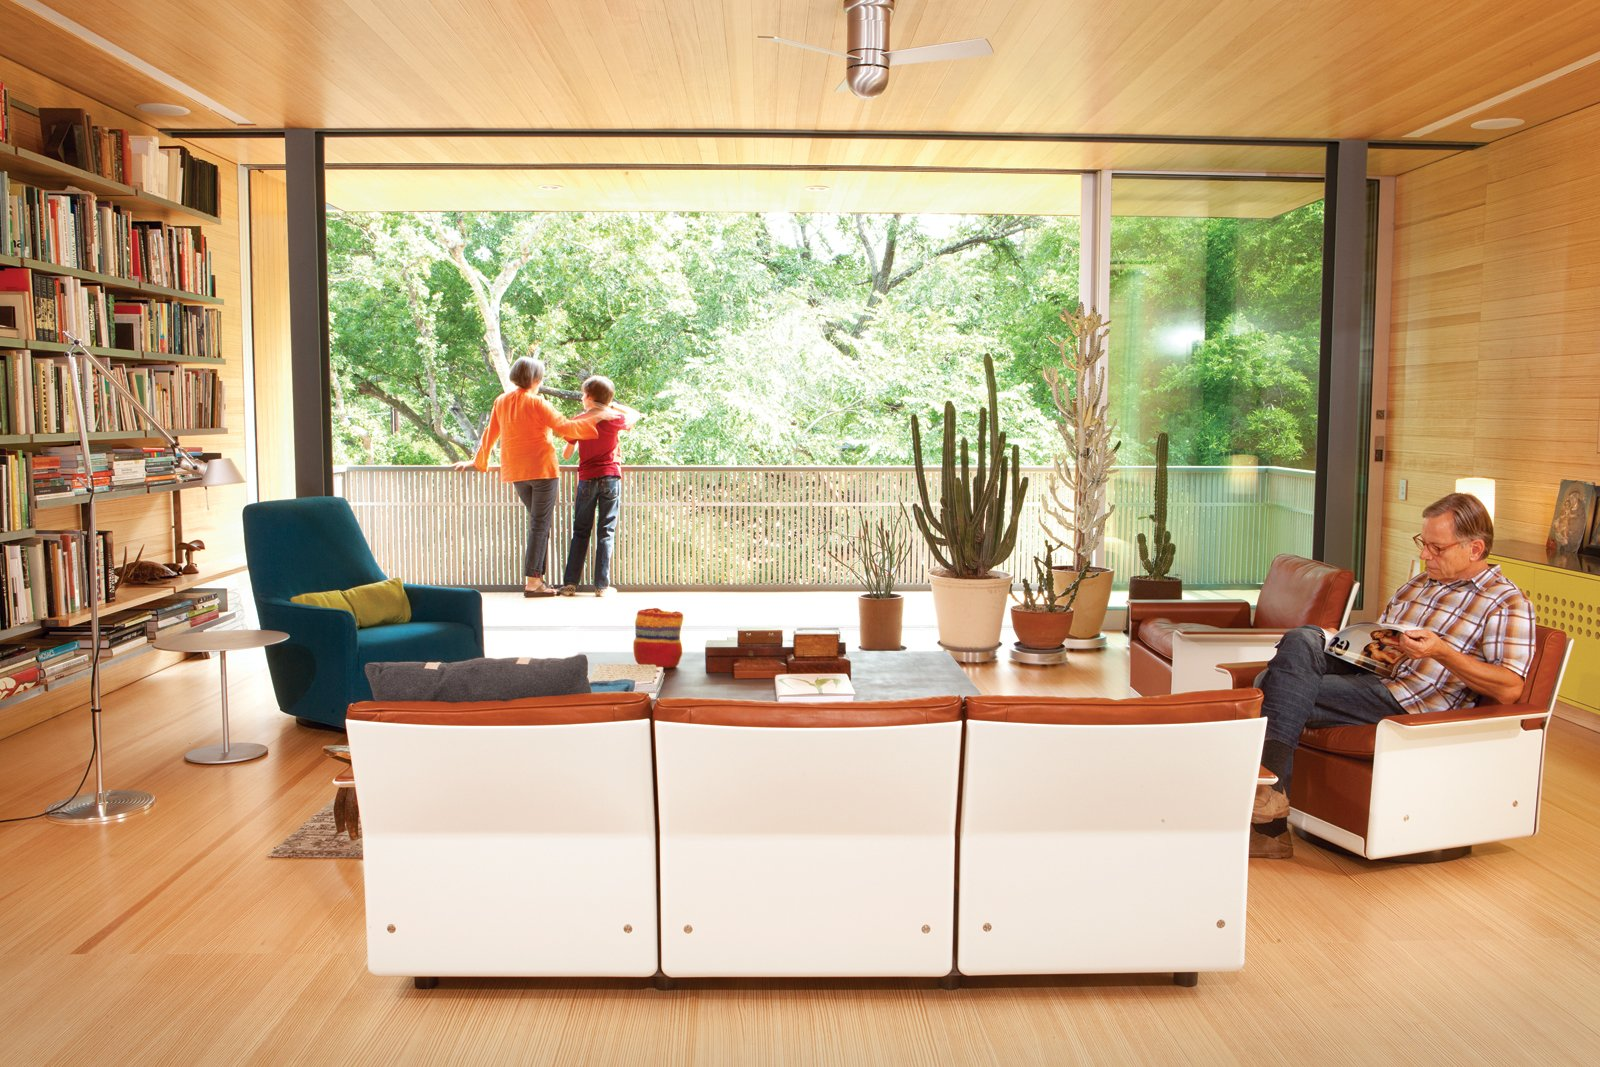 Great midcentury modern interiors dwell